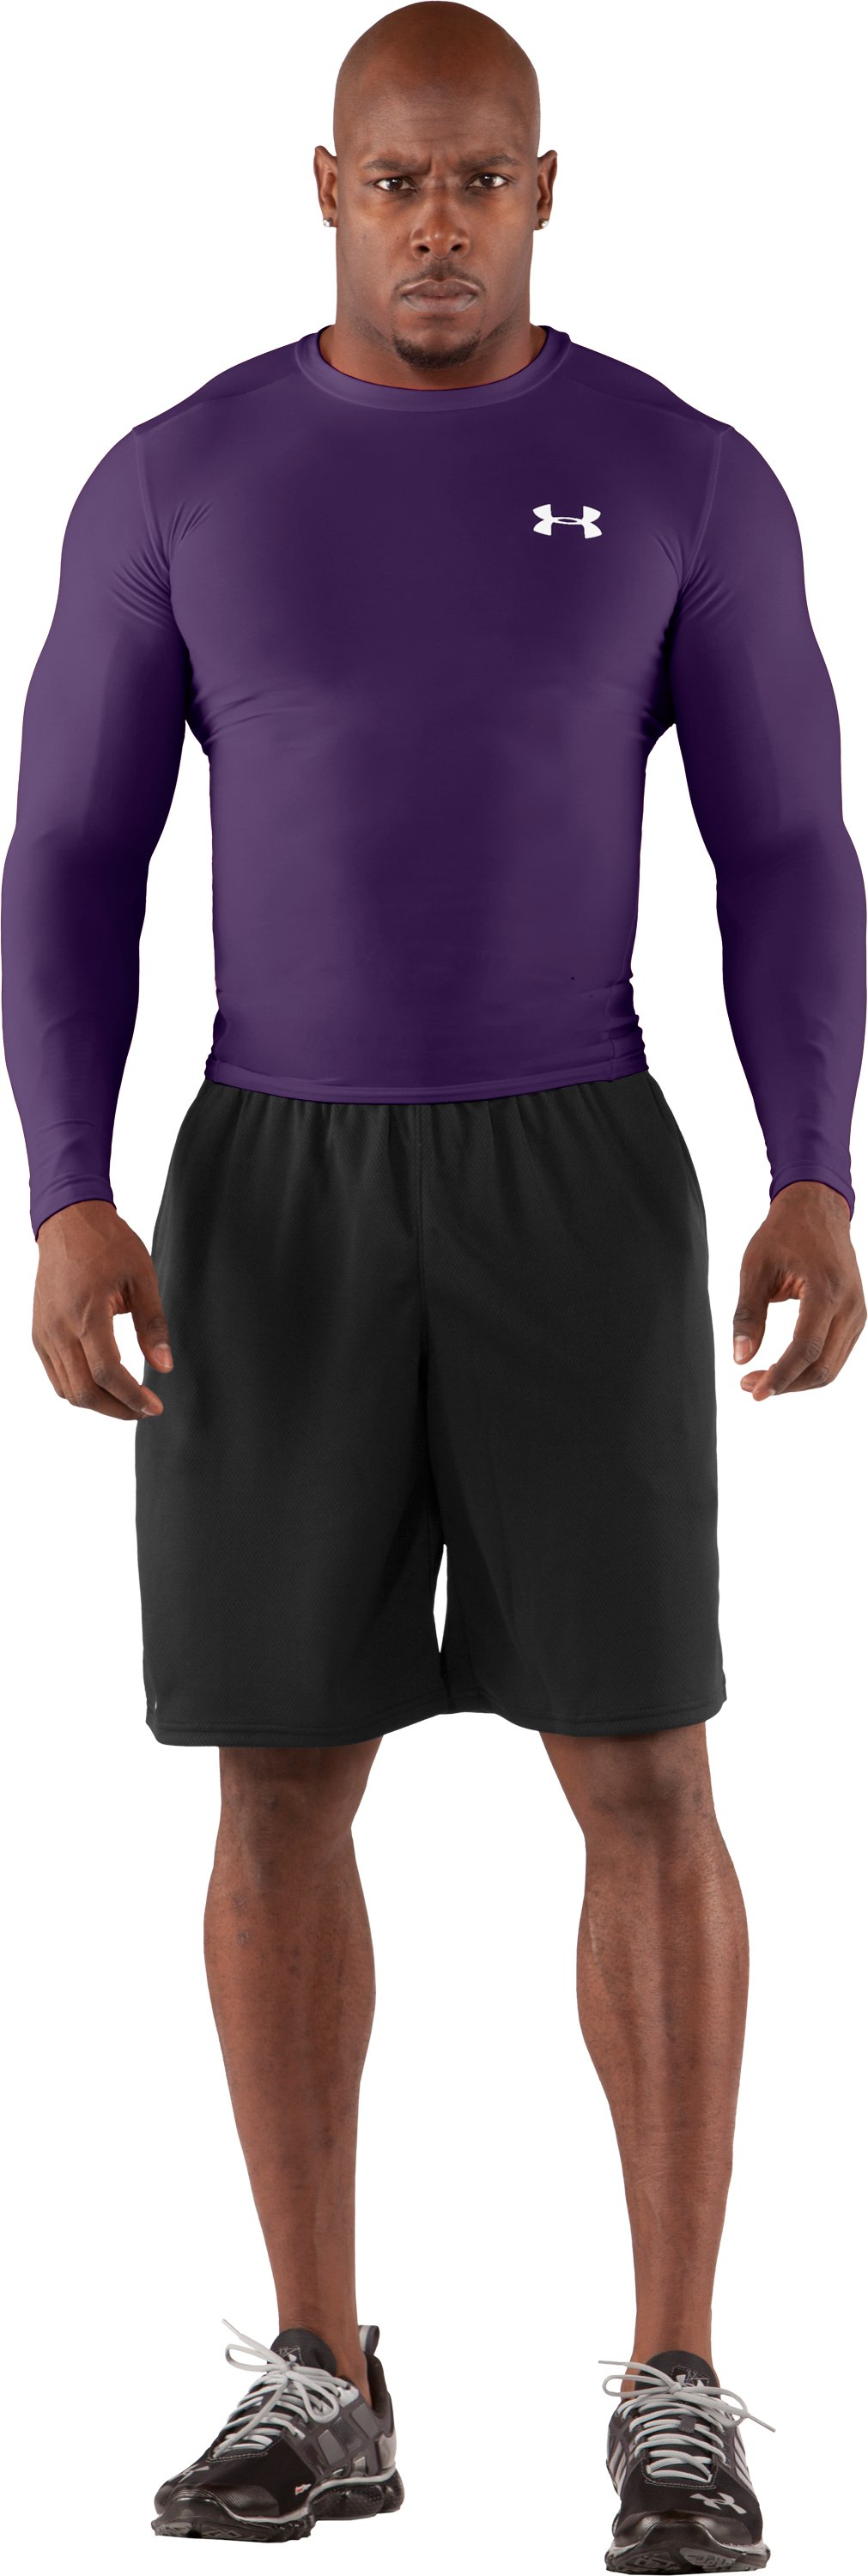 Men's HeatGear® Compression Long Sleeve T-Shirt, Purple, zoomed image